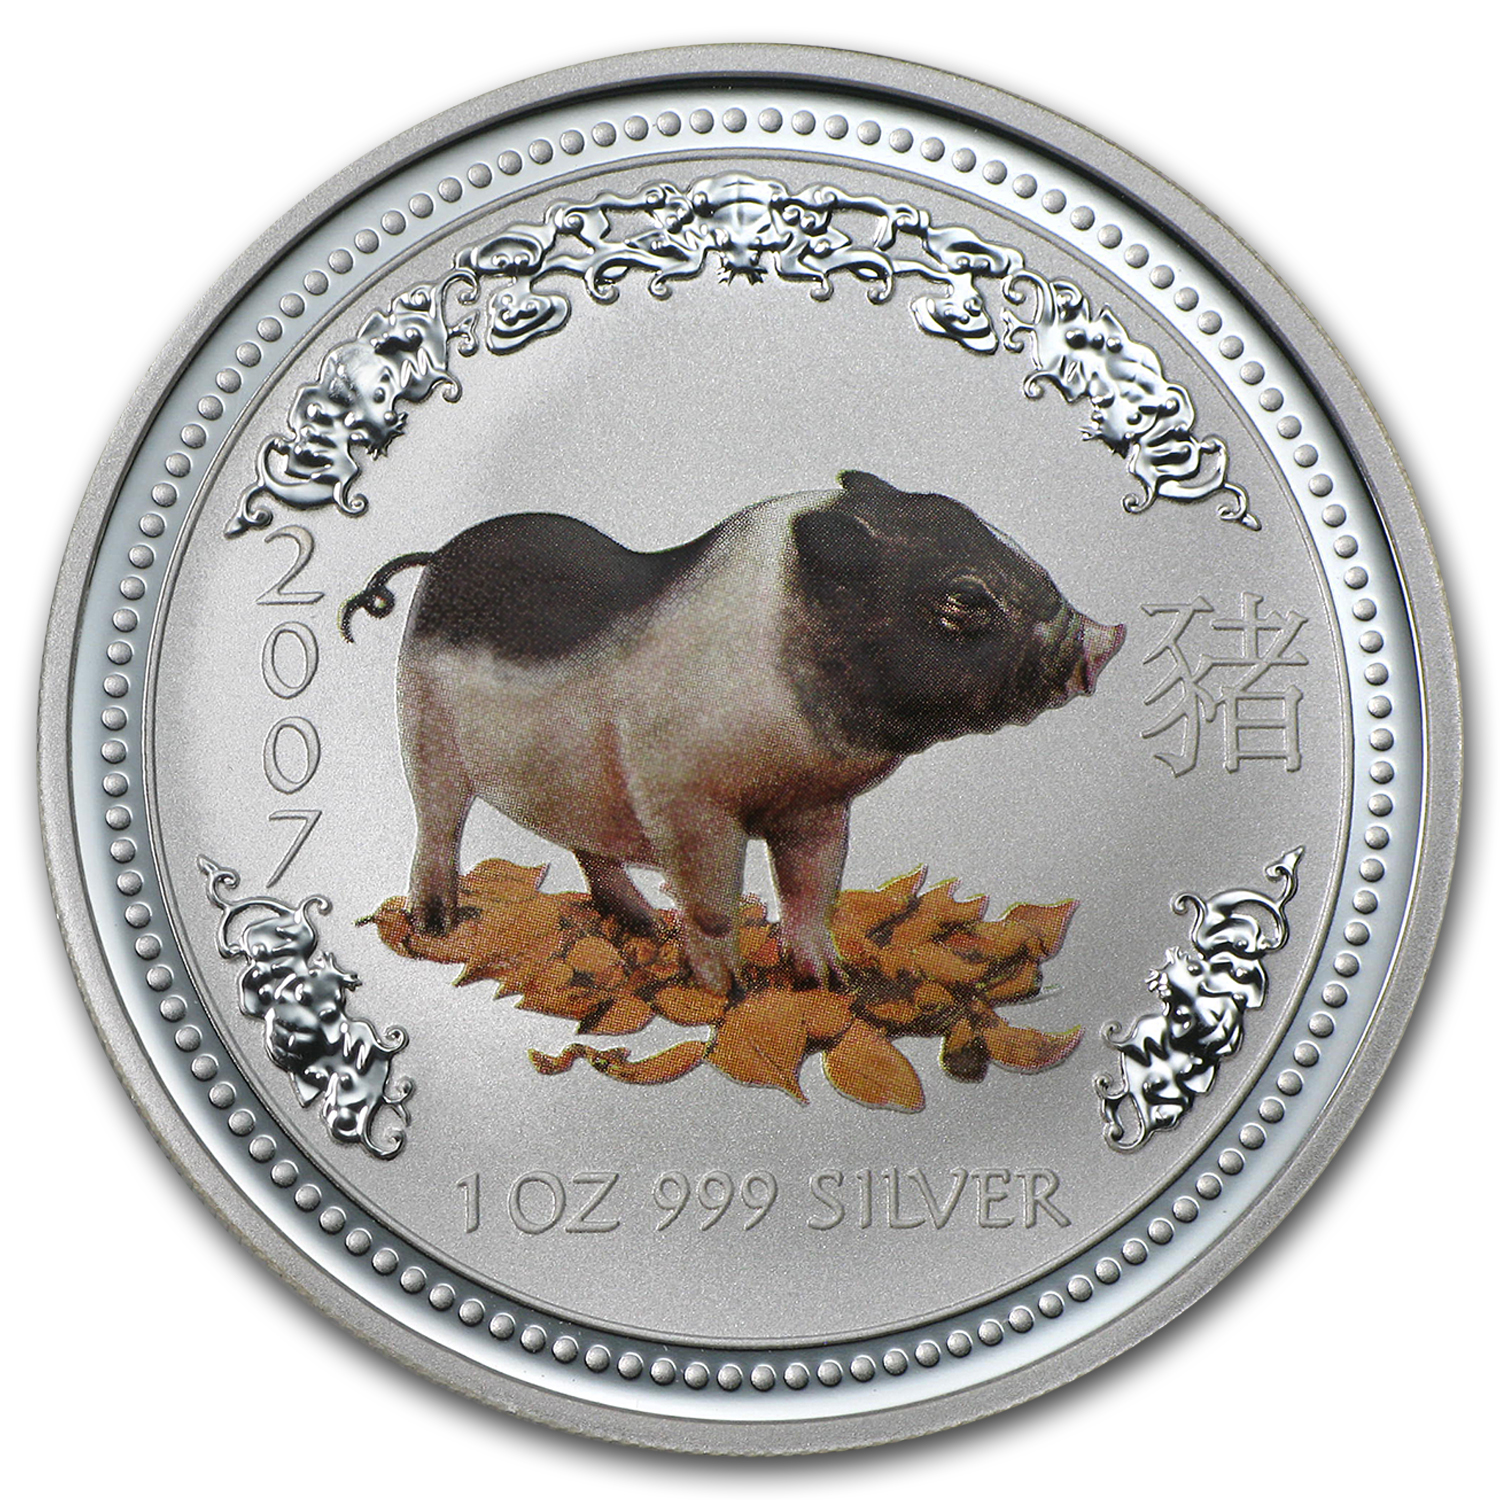 2007 Australia 1 oz Silver Year of the Pig BU (Colorized)